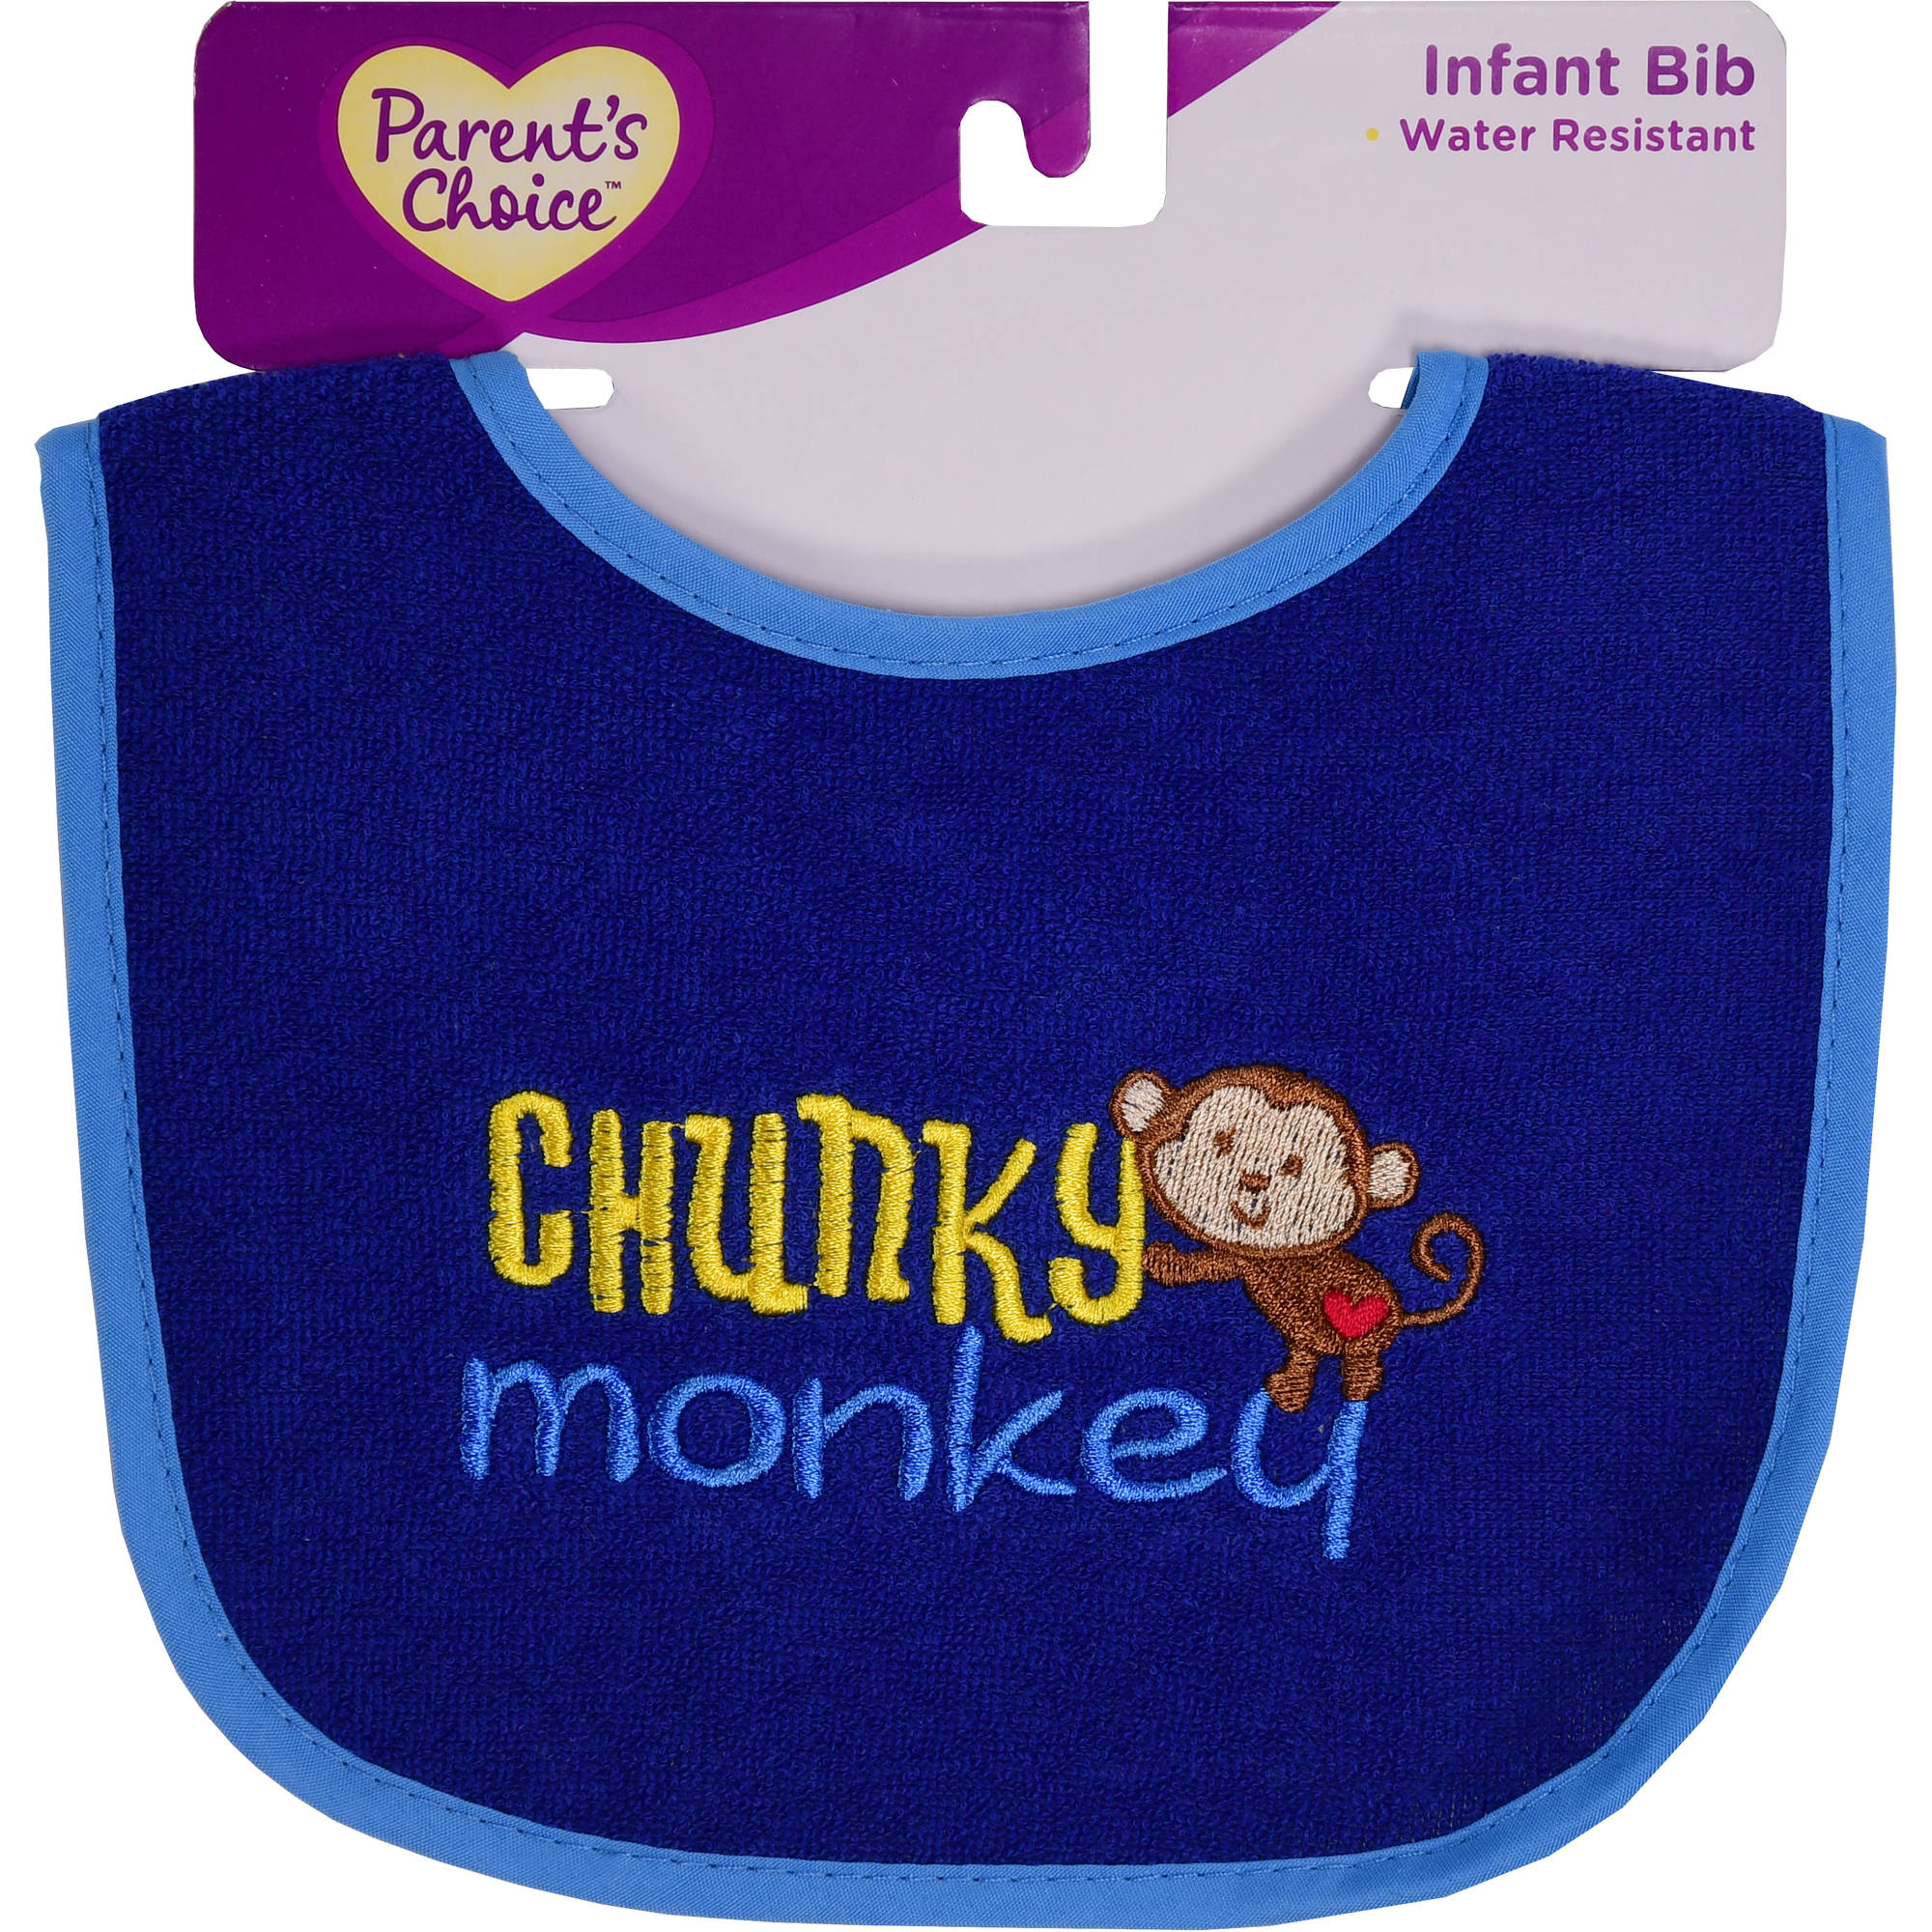 Parent's Choice Infant Bibs, 2 count